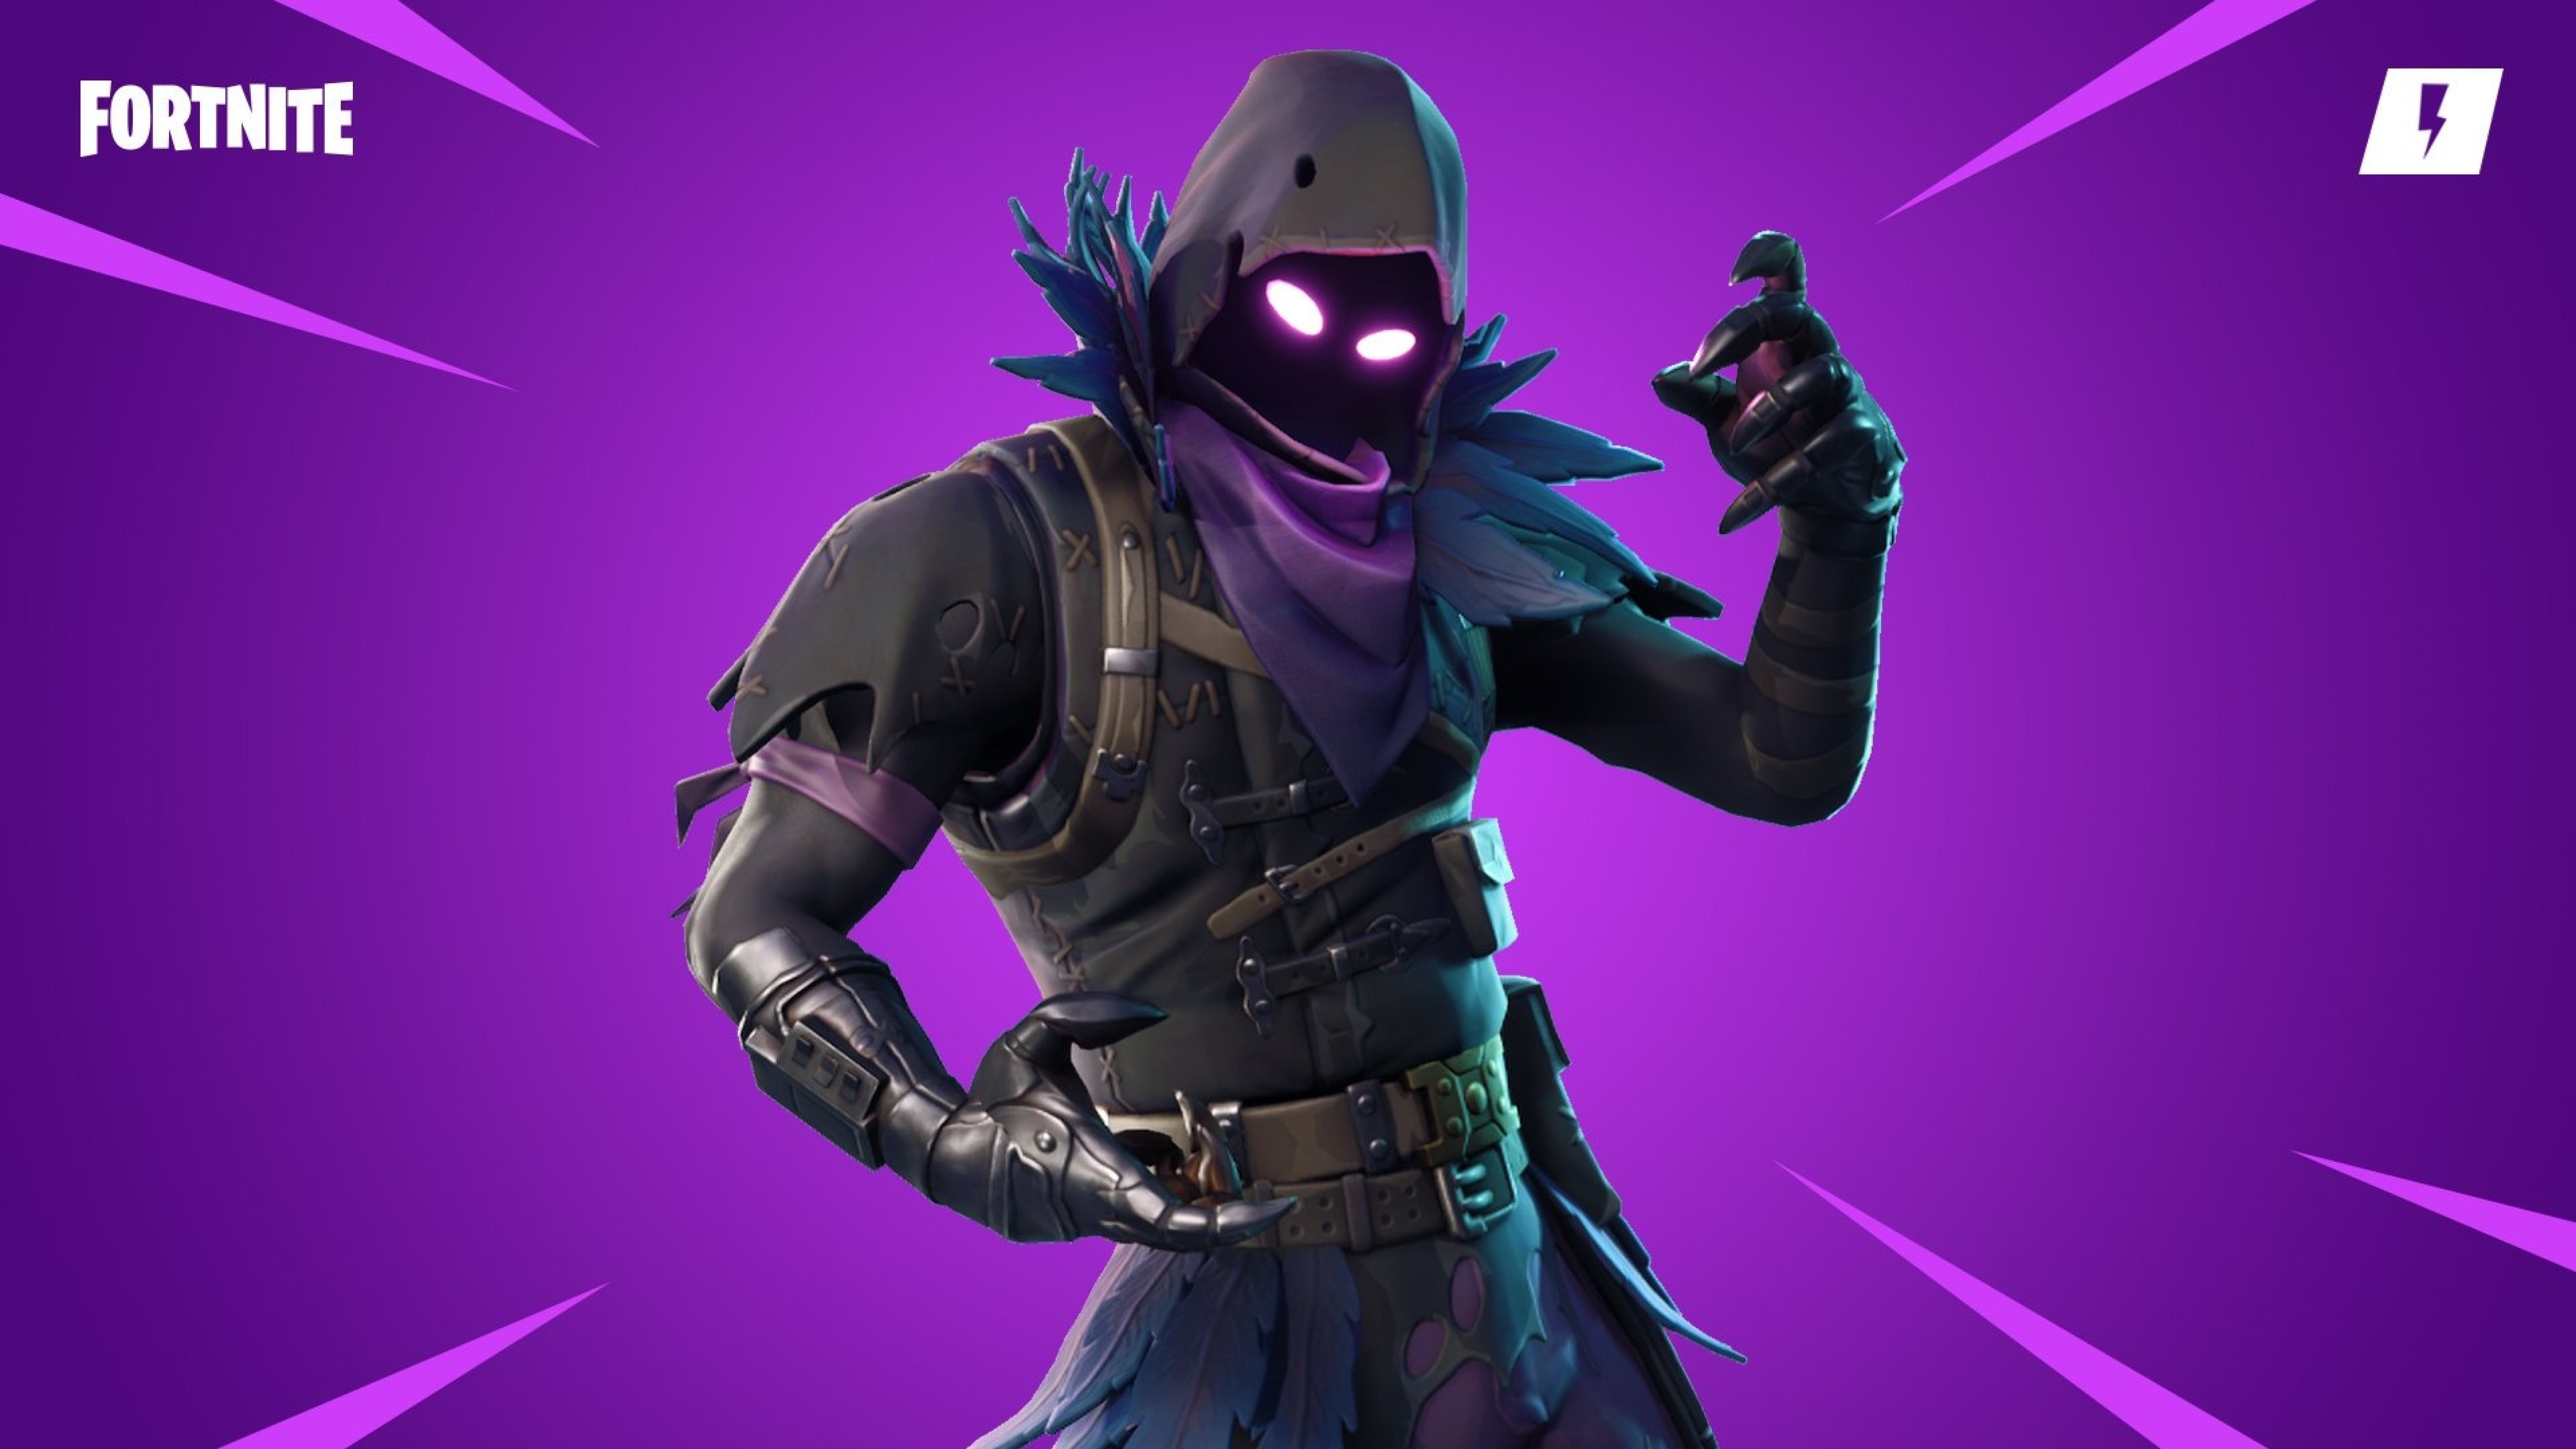 7680x4320 Raven Fortnite 8k Wallpaper Hd Games 4k Wallpapers Images Photos And Background